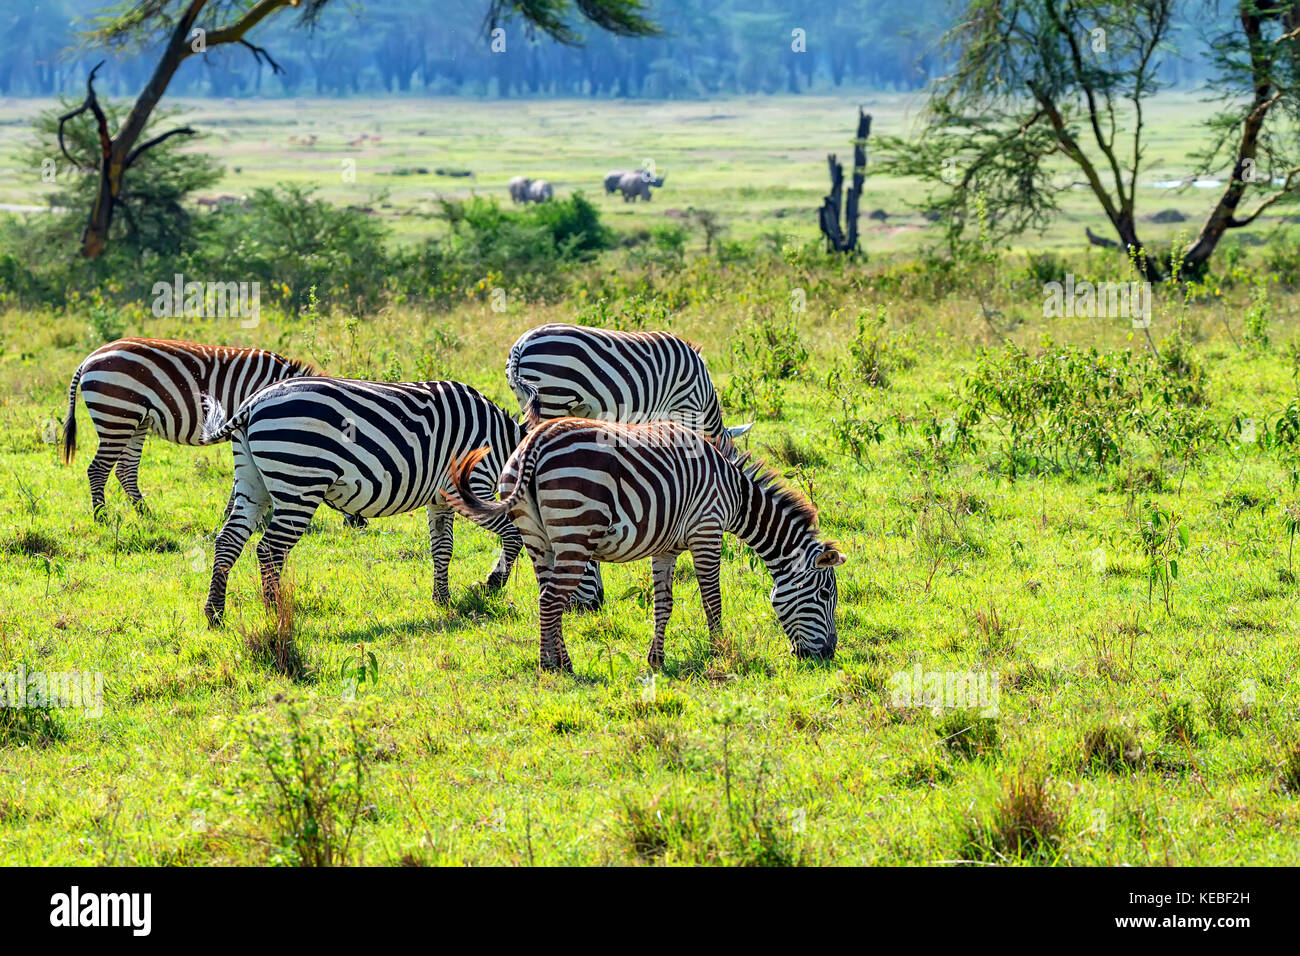 Zebras grazing in savanna - Stock Image